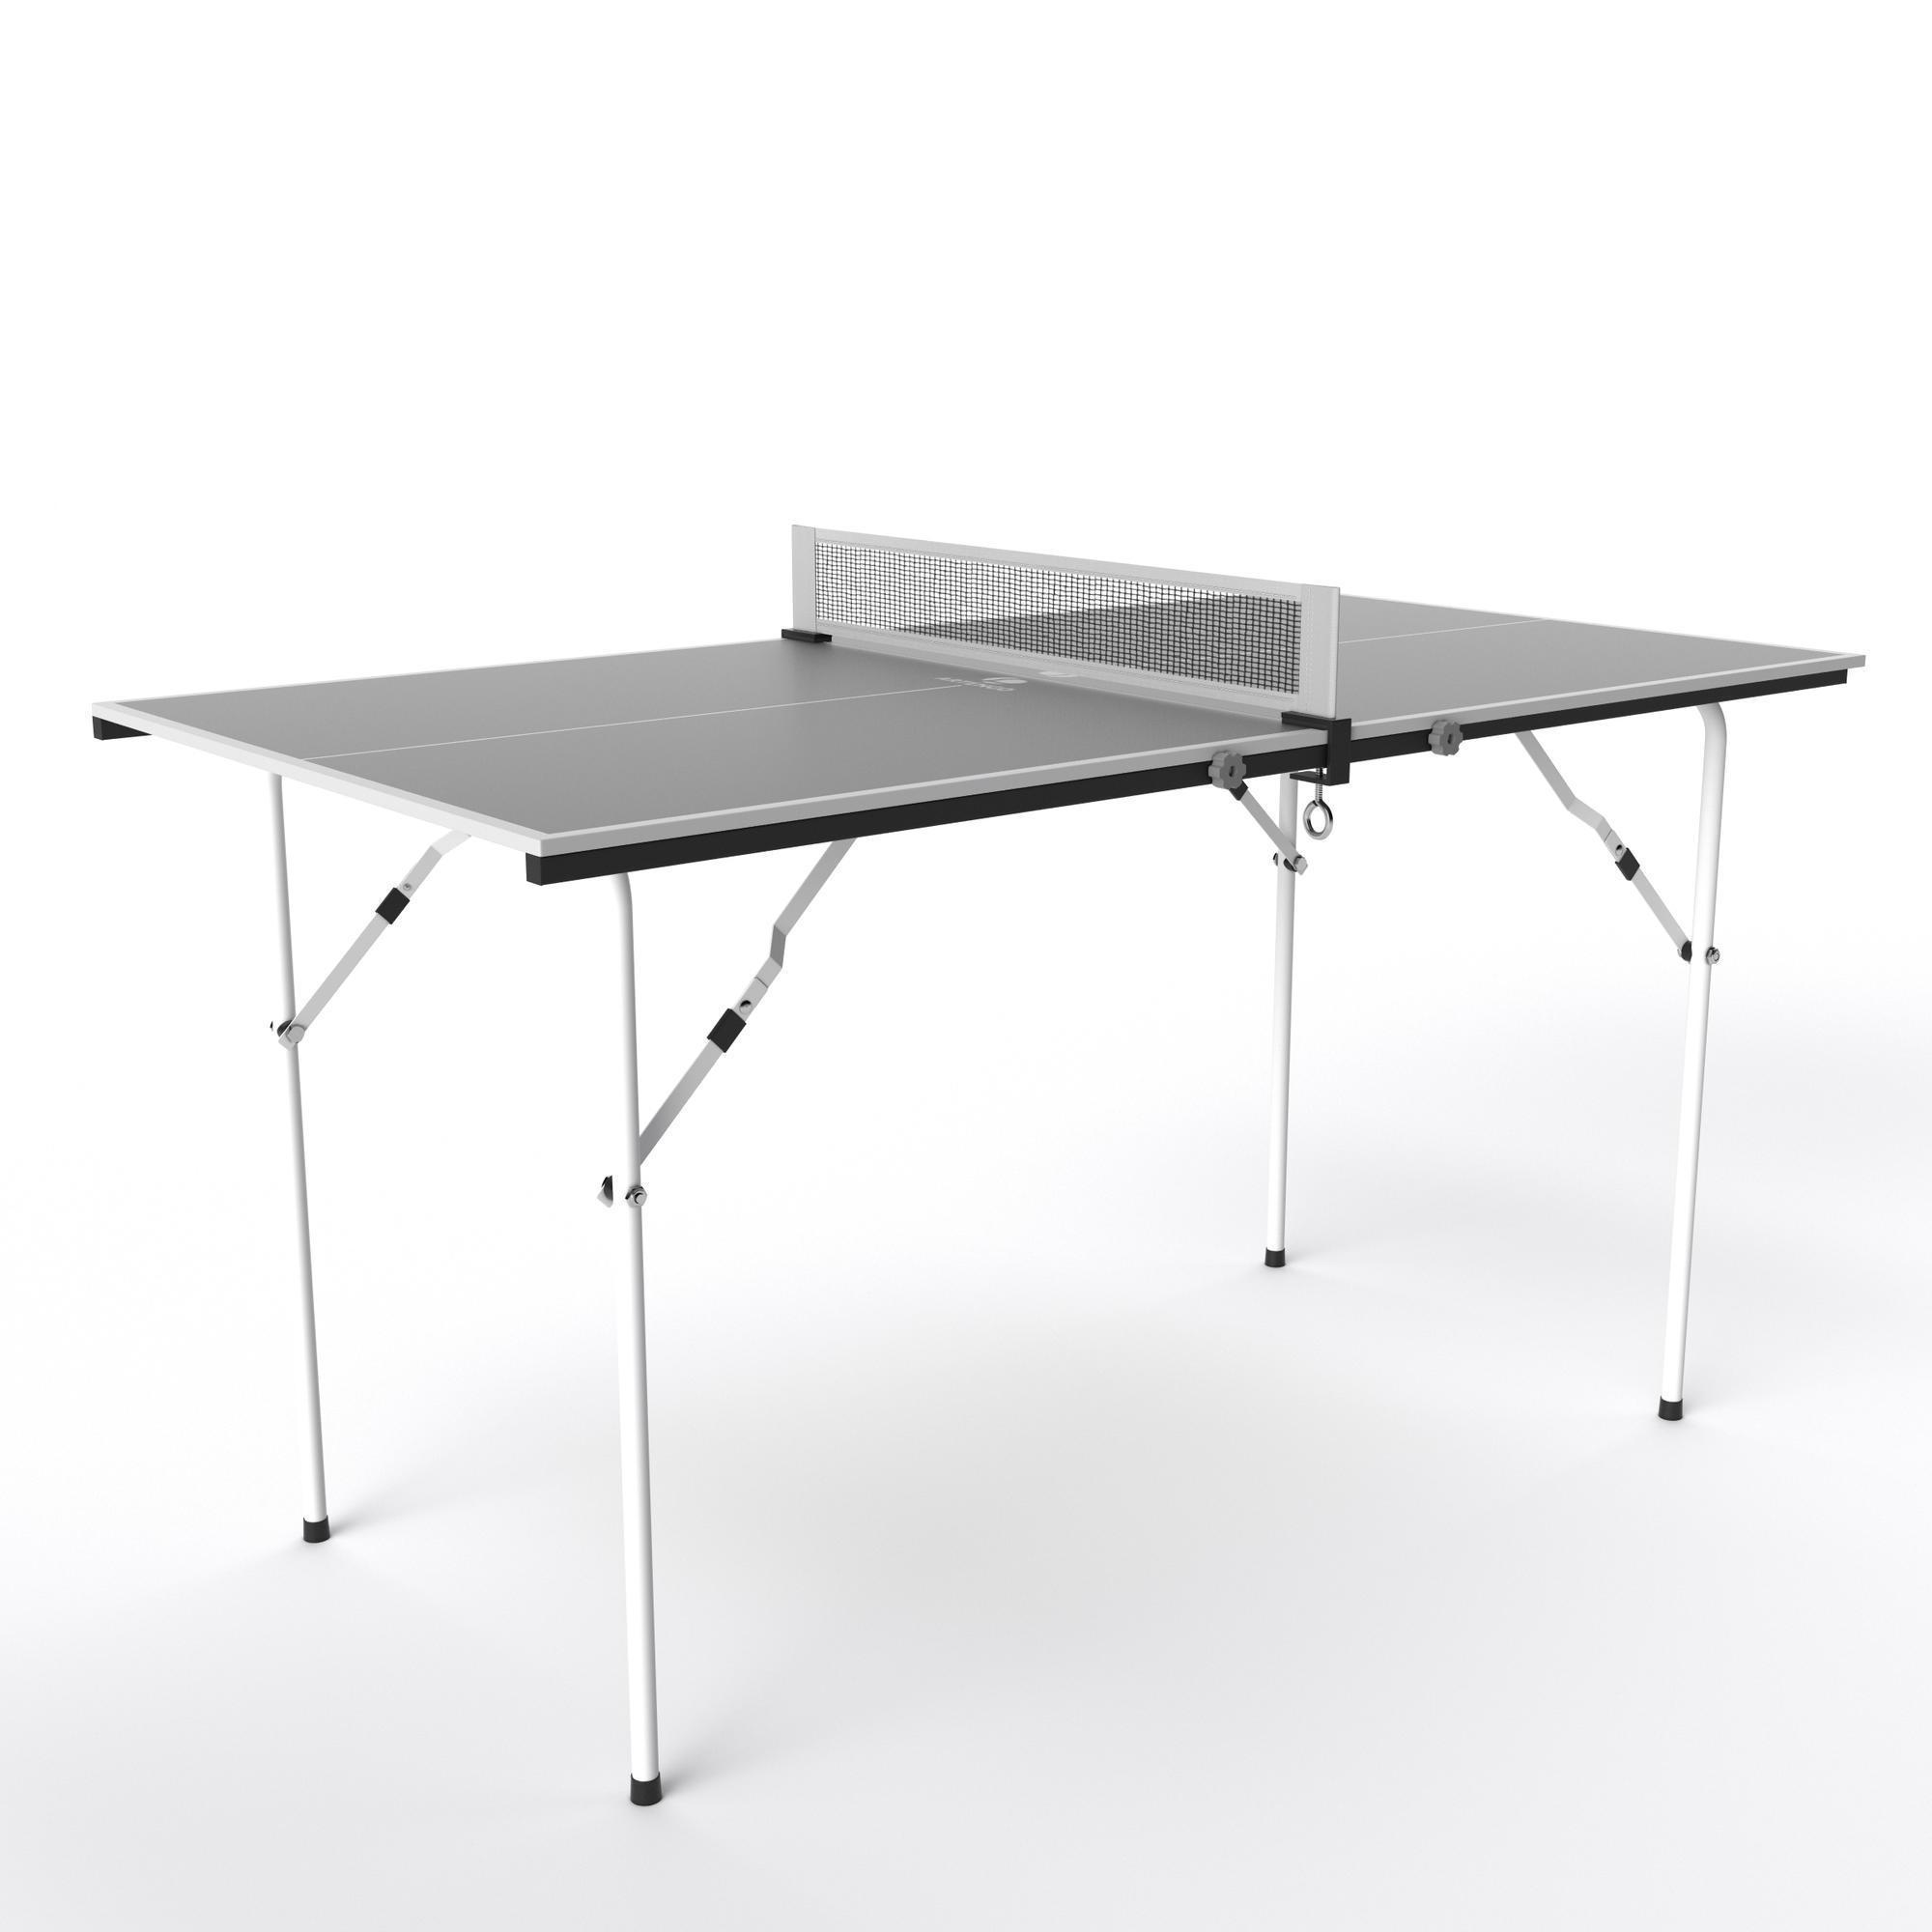 ppt 500 s indoor free ping pong table artengo